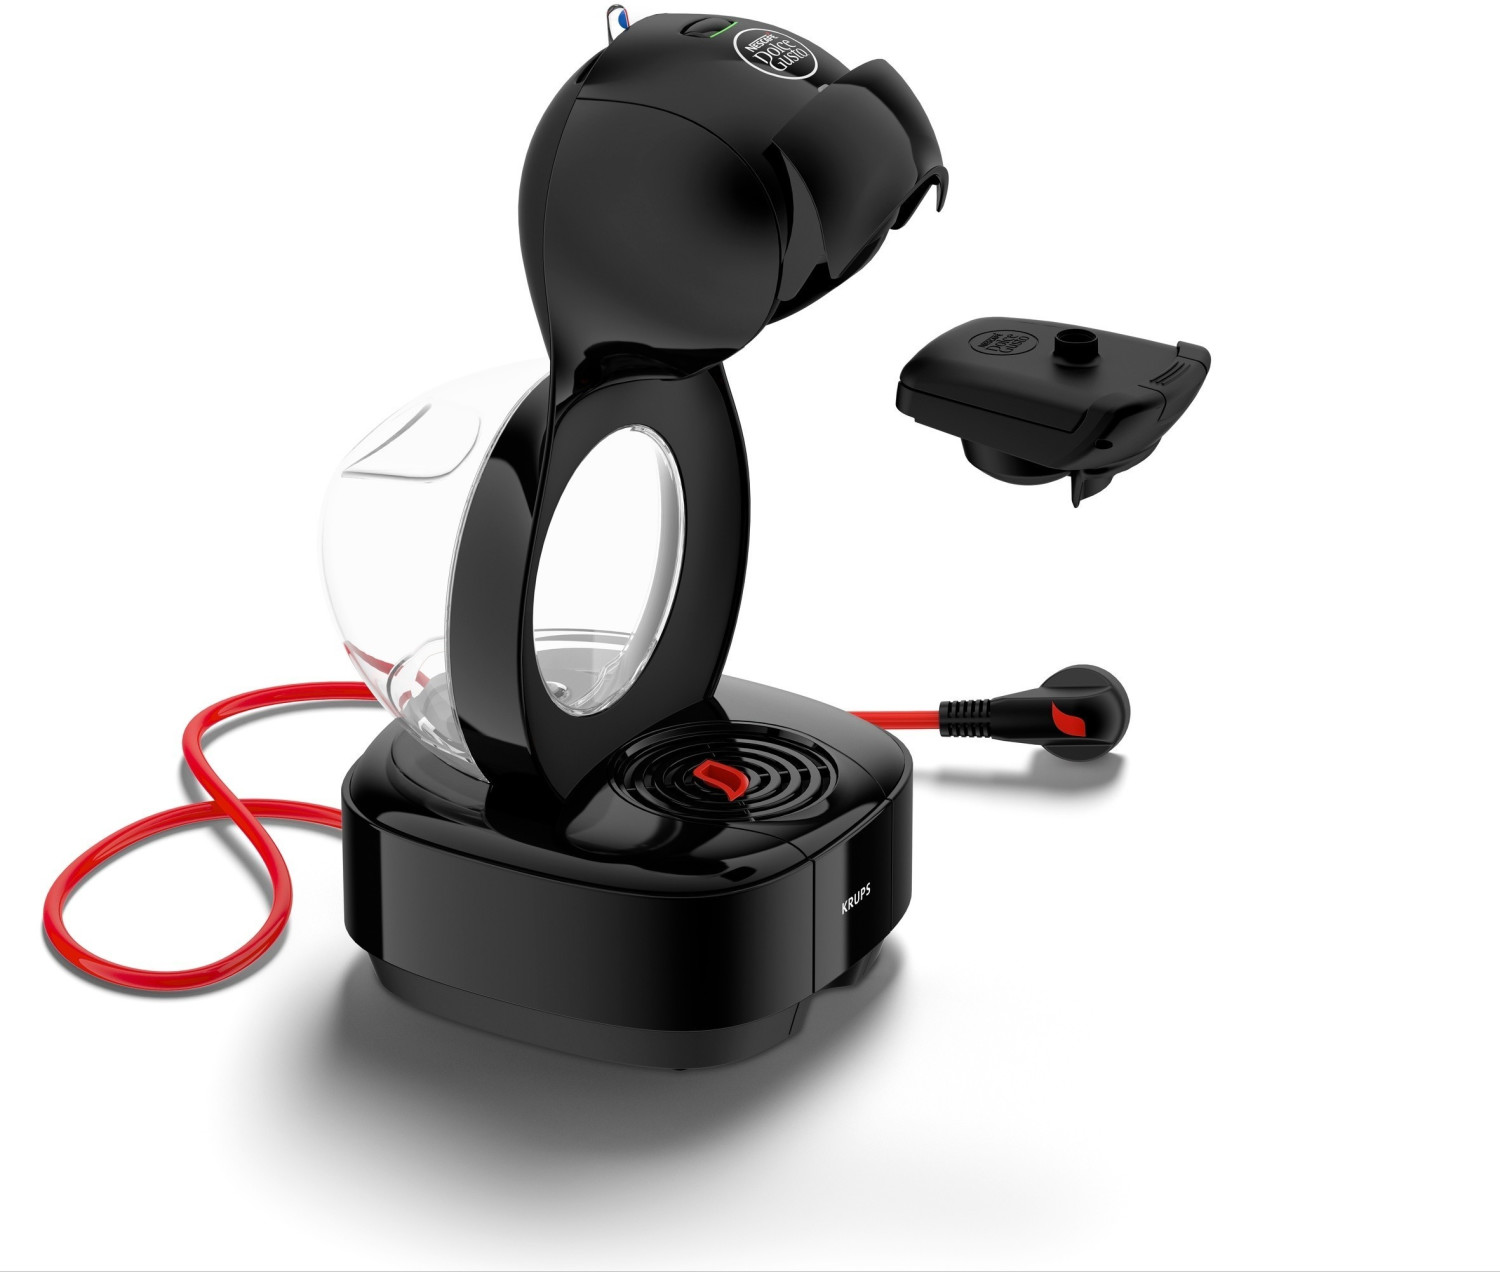 Image of Krups Dolce Gusto Lumio KP1308